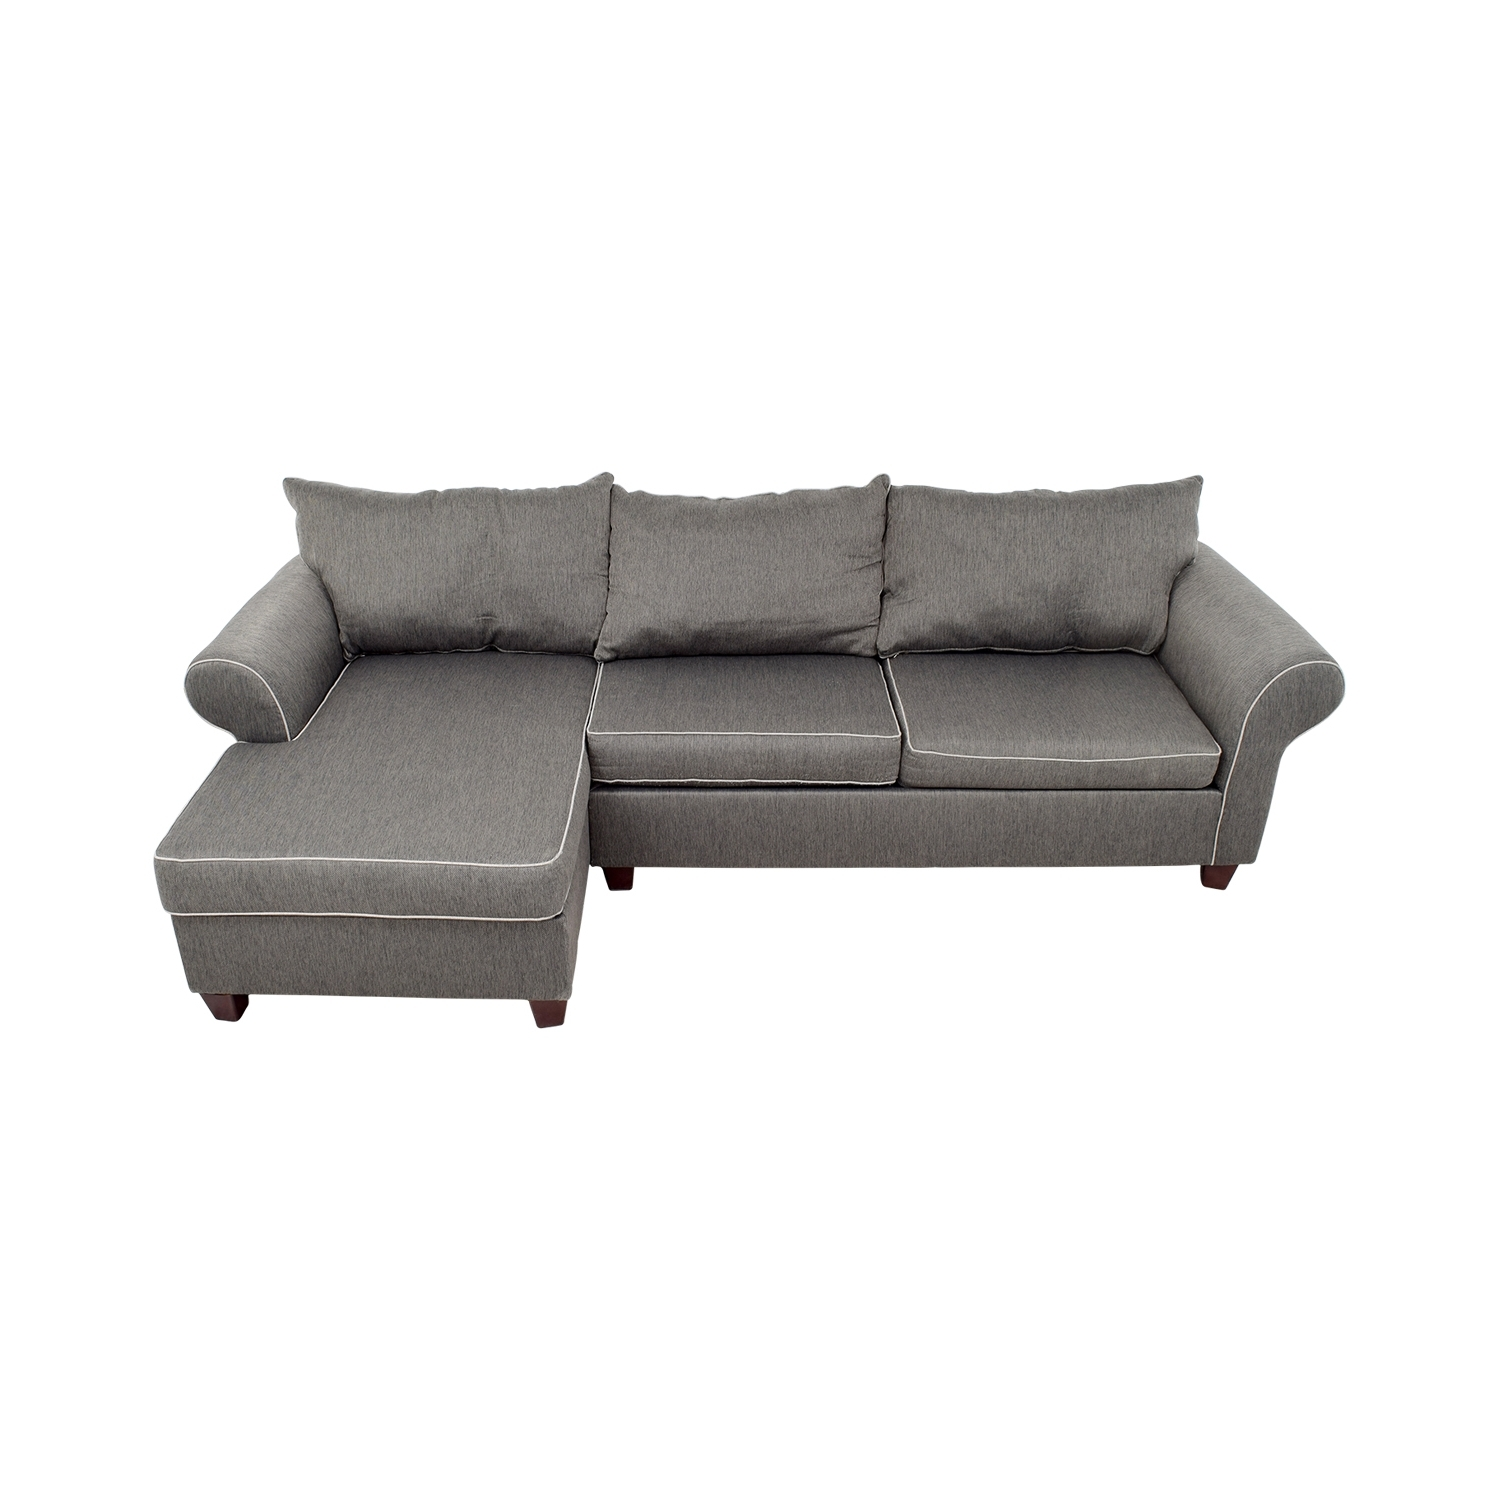 [%58% Off – Bob's Furniture Bob's Furniture Grey Chaise Sectional With Regard To Recent Bobs Furniture Chaises|Bobs Furniture Chaises In Latest 58% Off – Bob's Furniture Bob's Furniture Grey Chaise Sectional|Most Recently Released Bobs Furniture Chaises With 58% Off – Bob's Furniture Bob's Furniture Grey Chaise Sectional|Well Liked 58% Off – Bob's Furniture Bob's Furniture Grey Chaise Sectional With Regard To Bobs Furniture Chaises%] (View 8 of 15)